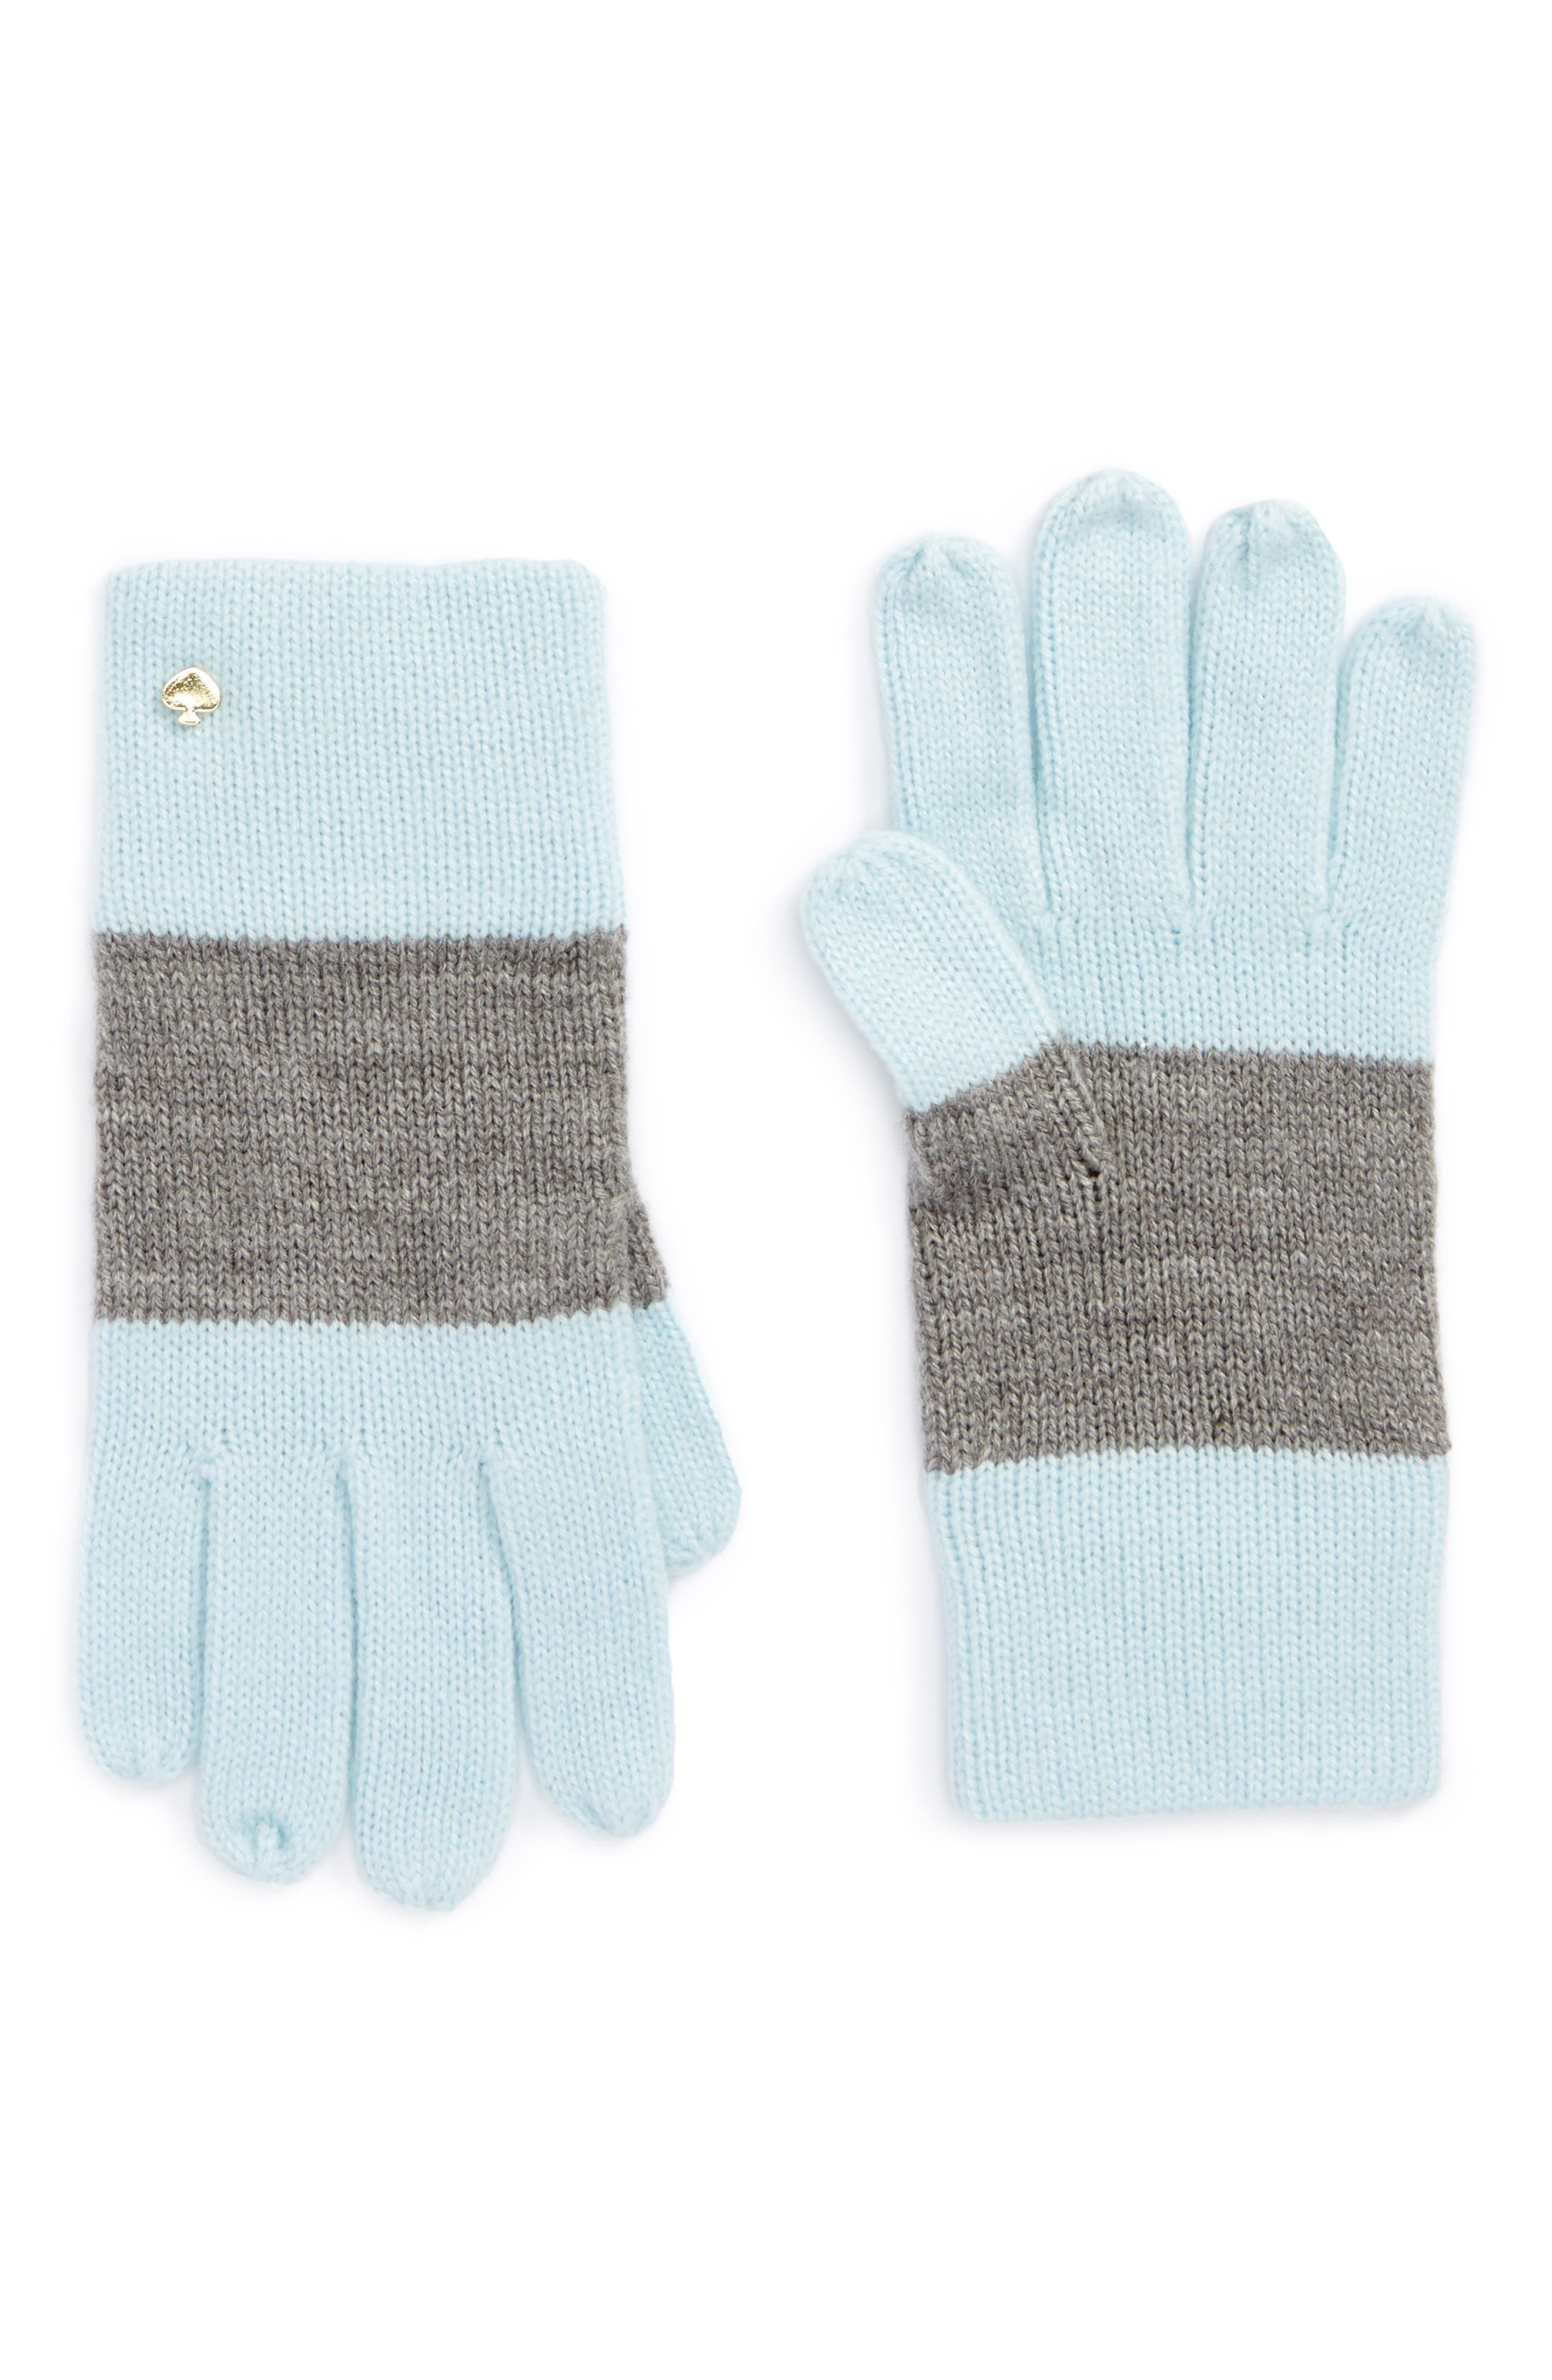 Alternate Image 1 Selected - kate spade new york colorblock knit gloves